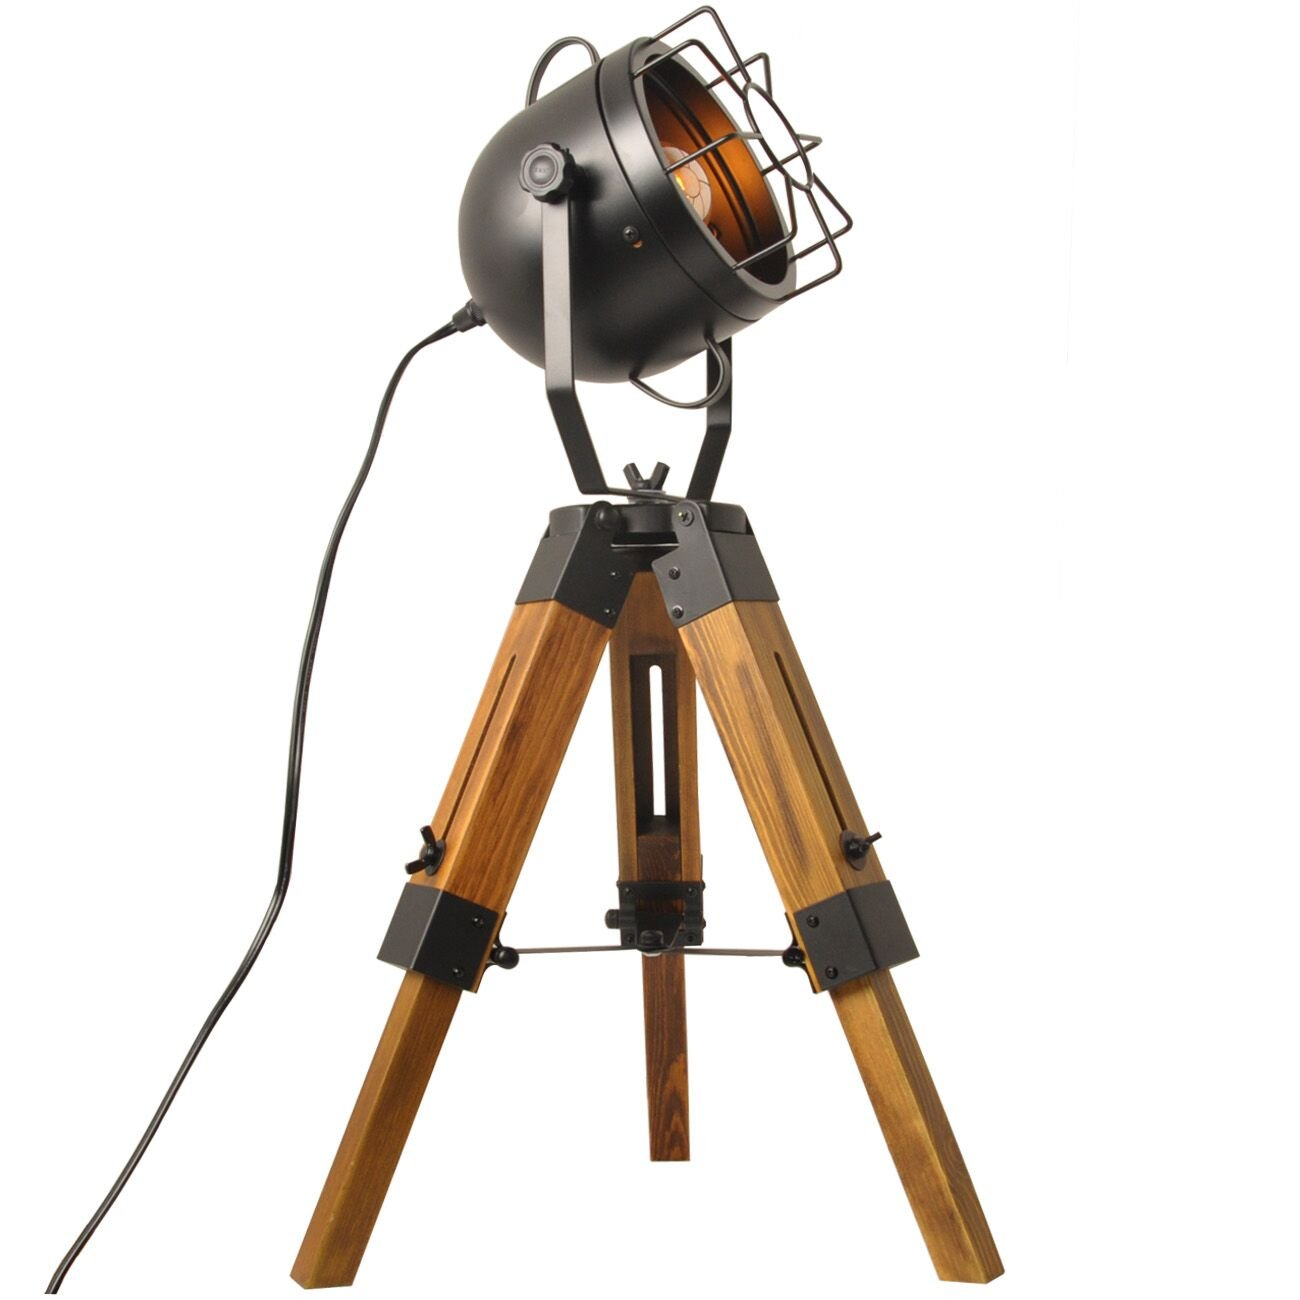 Mesh Table Lamp Round Searchlight-Industrial Vintage Floor Table Tripod Lamps,Wooden Stand Lamp Black,Antique Home Decor Searchlight Floor Lamp,Mini Tripod Light-Without Edison Led Bulbs